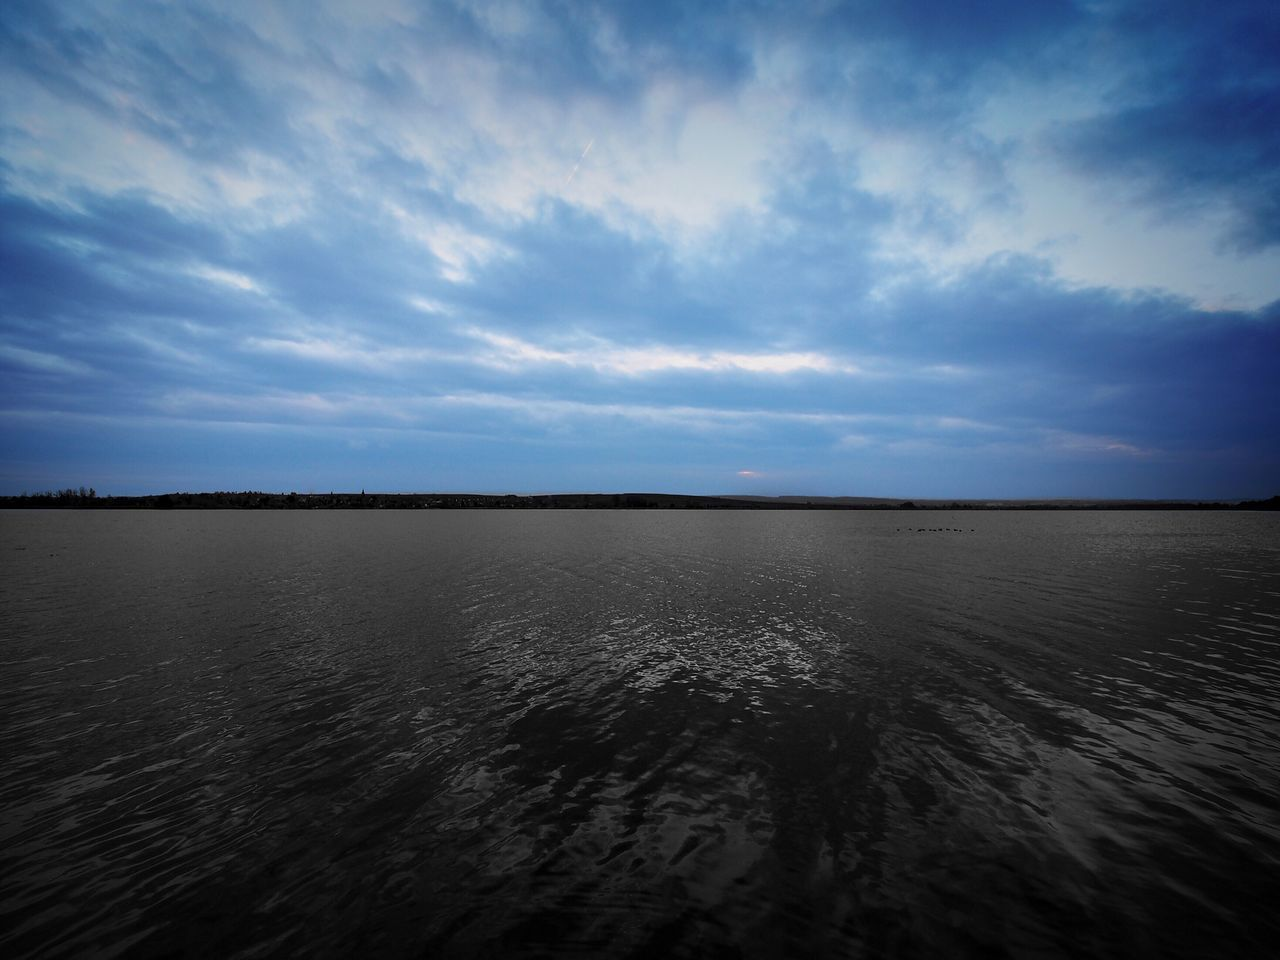 sky, scenics, tranquility, tranquil scene, nature, cloud - sky, beauty in nature, water, no people, outdoors, waterfront, lake, sunset, landscape, day